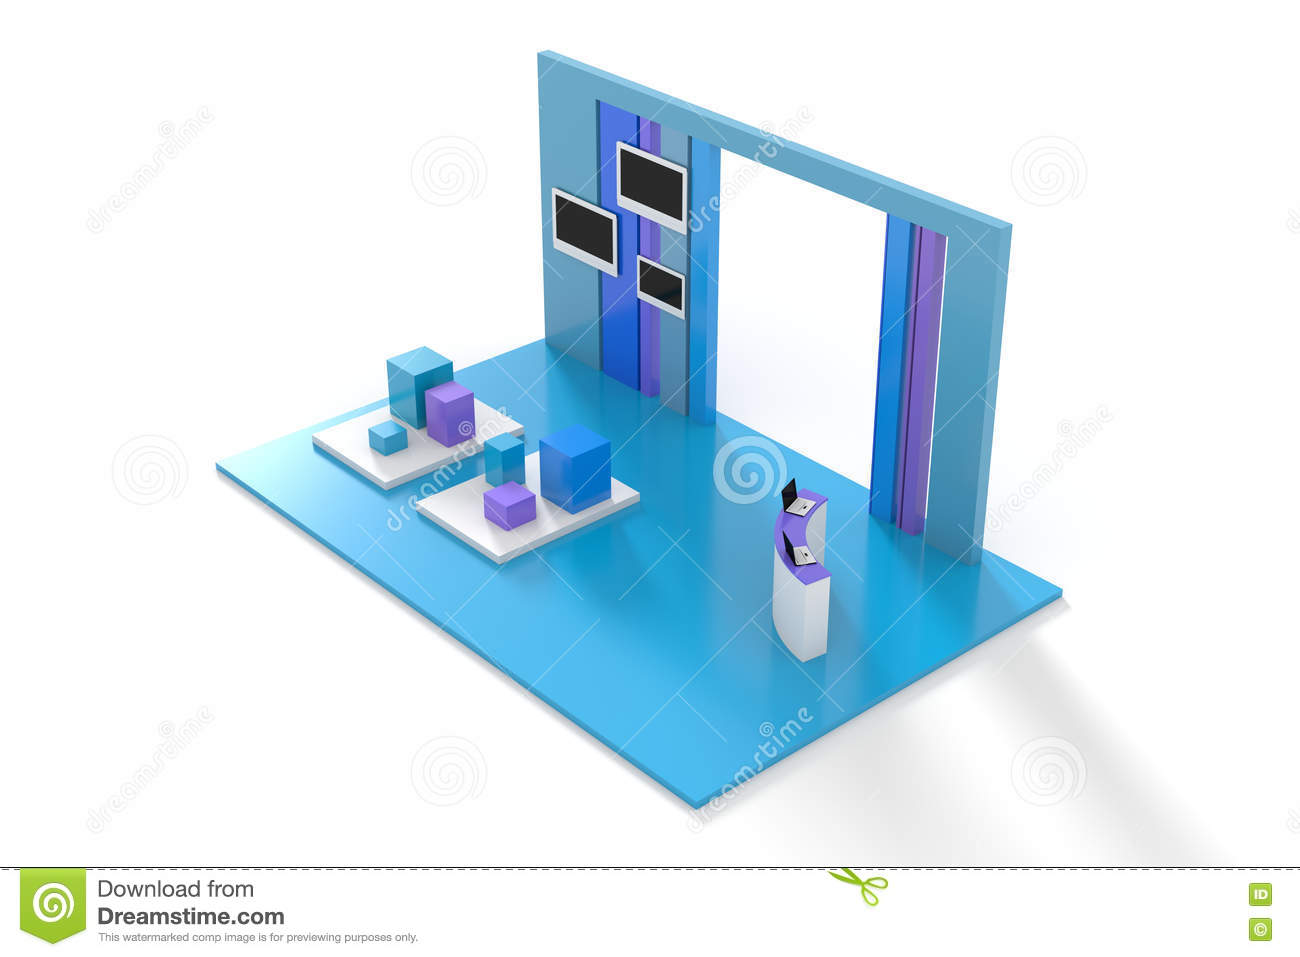 D Exhibition Model Download : Exhibition stand on white d render stock illustration